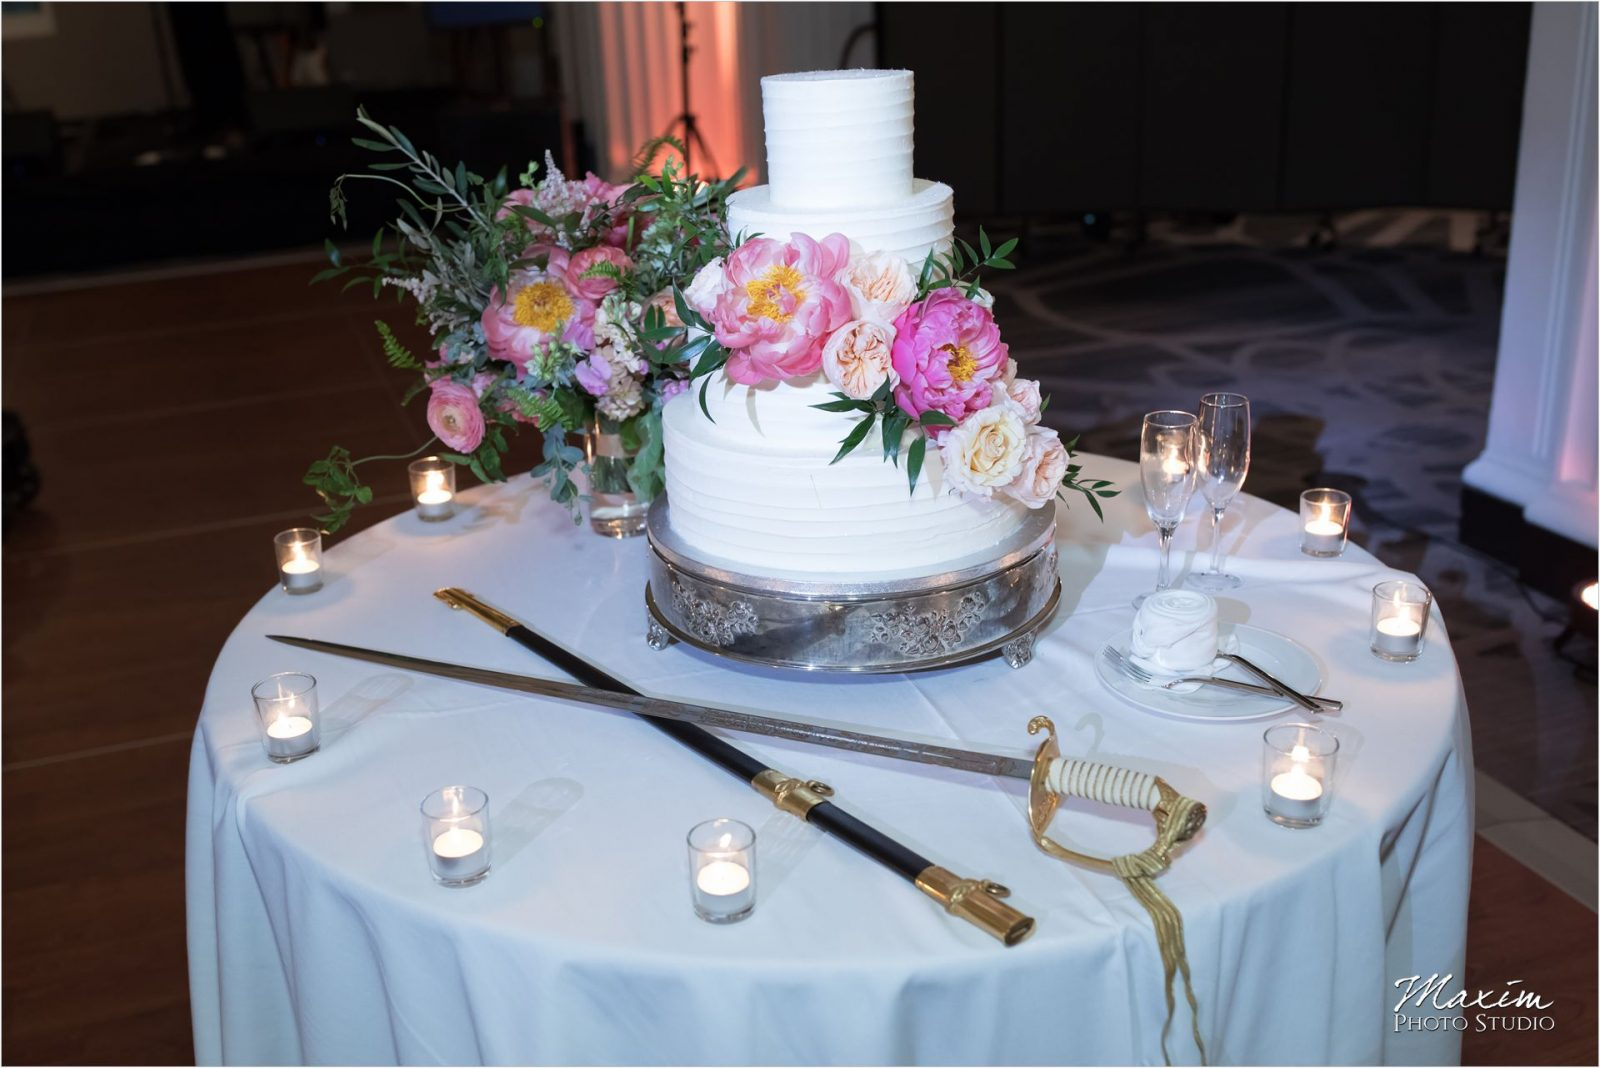 Renaissance Hotel Cincinnati Wedding Reception cake